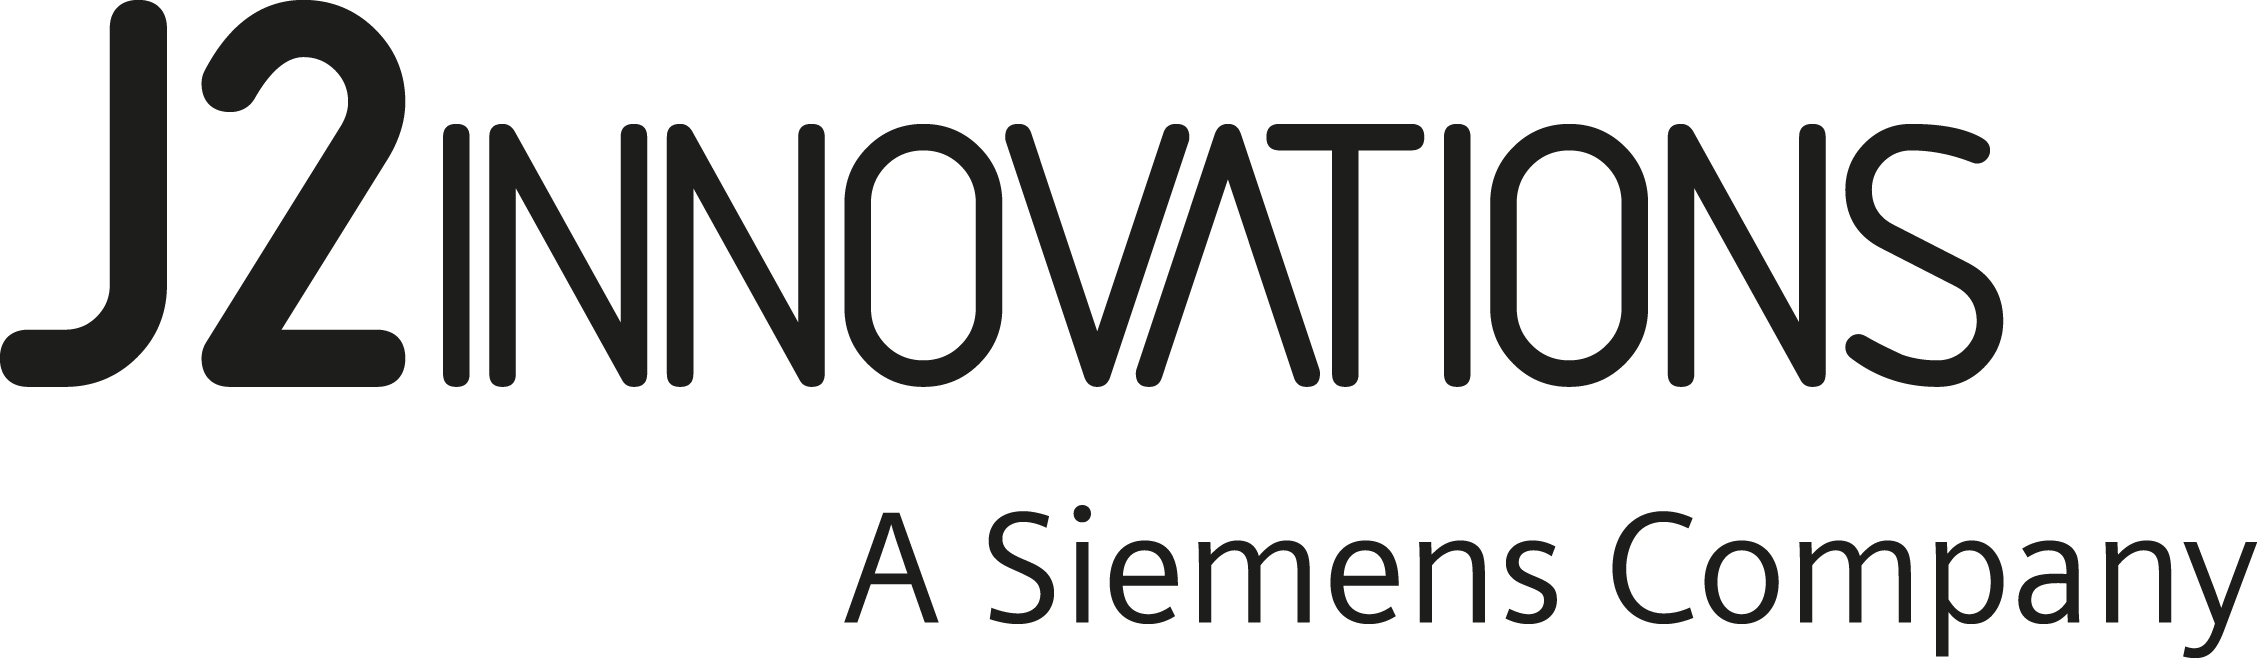 J2INNOVATIONS_A_Siemens_Company_Logo (002).png